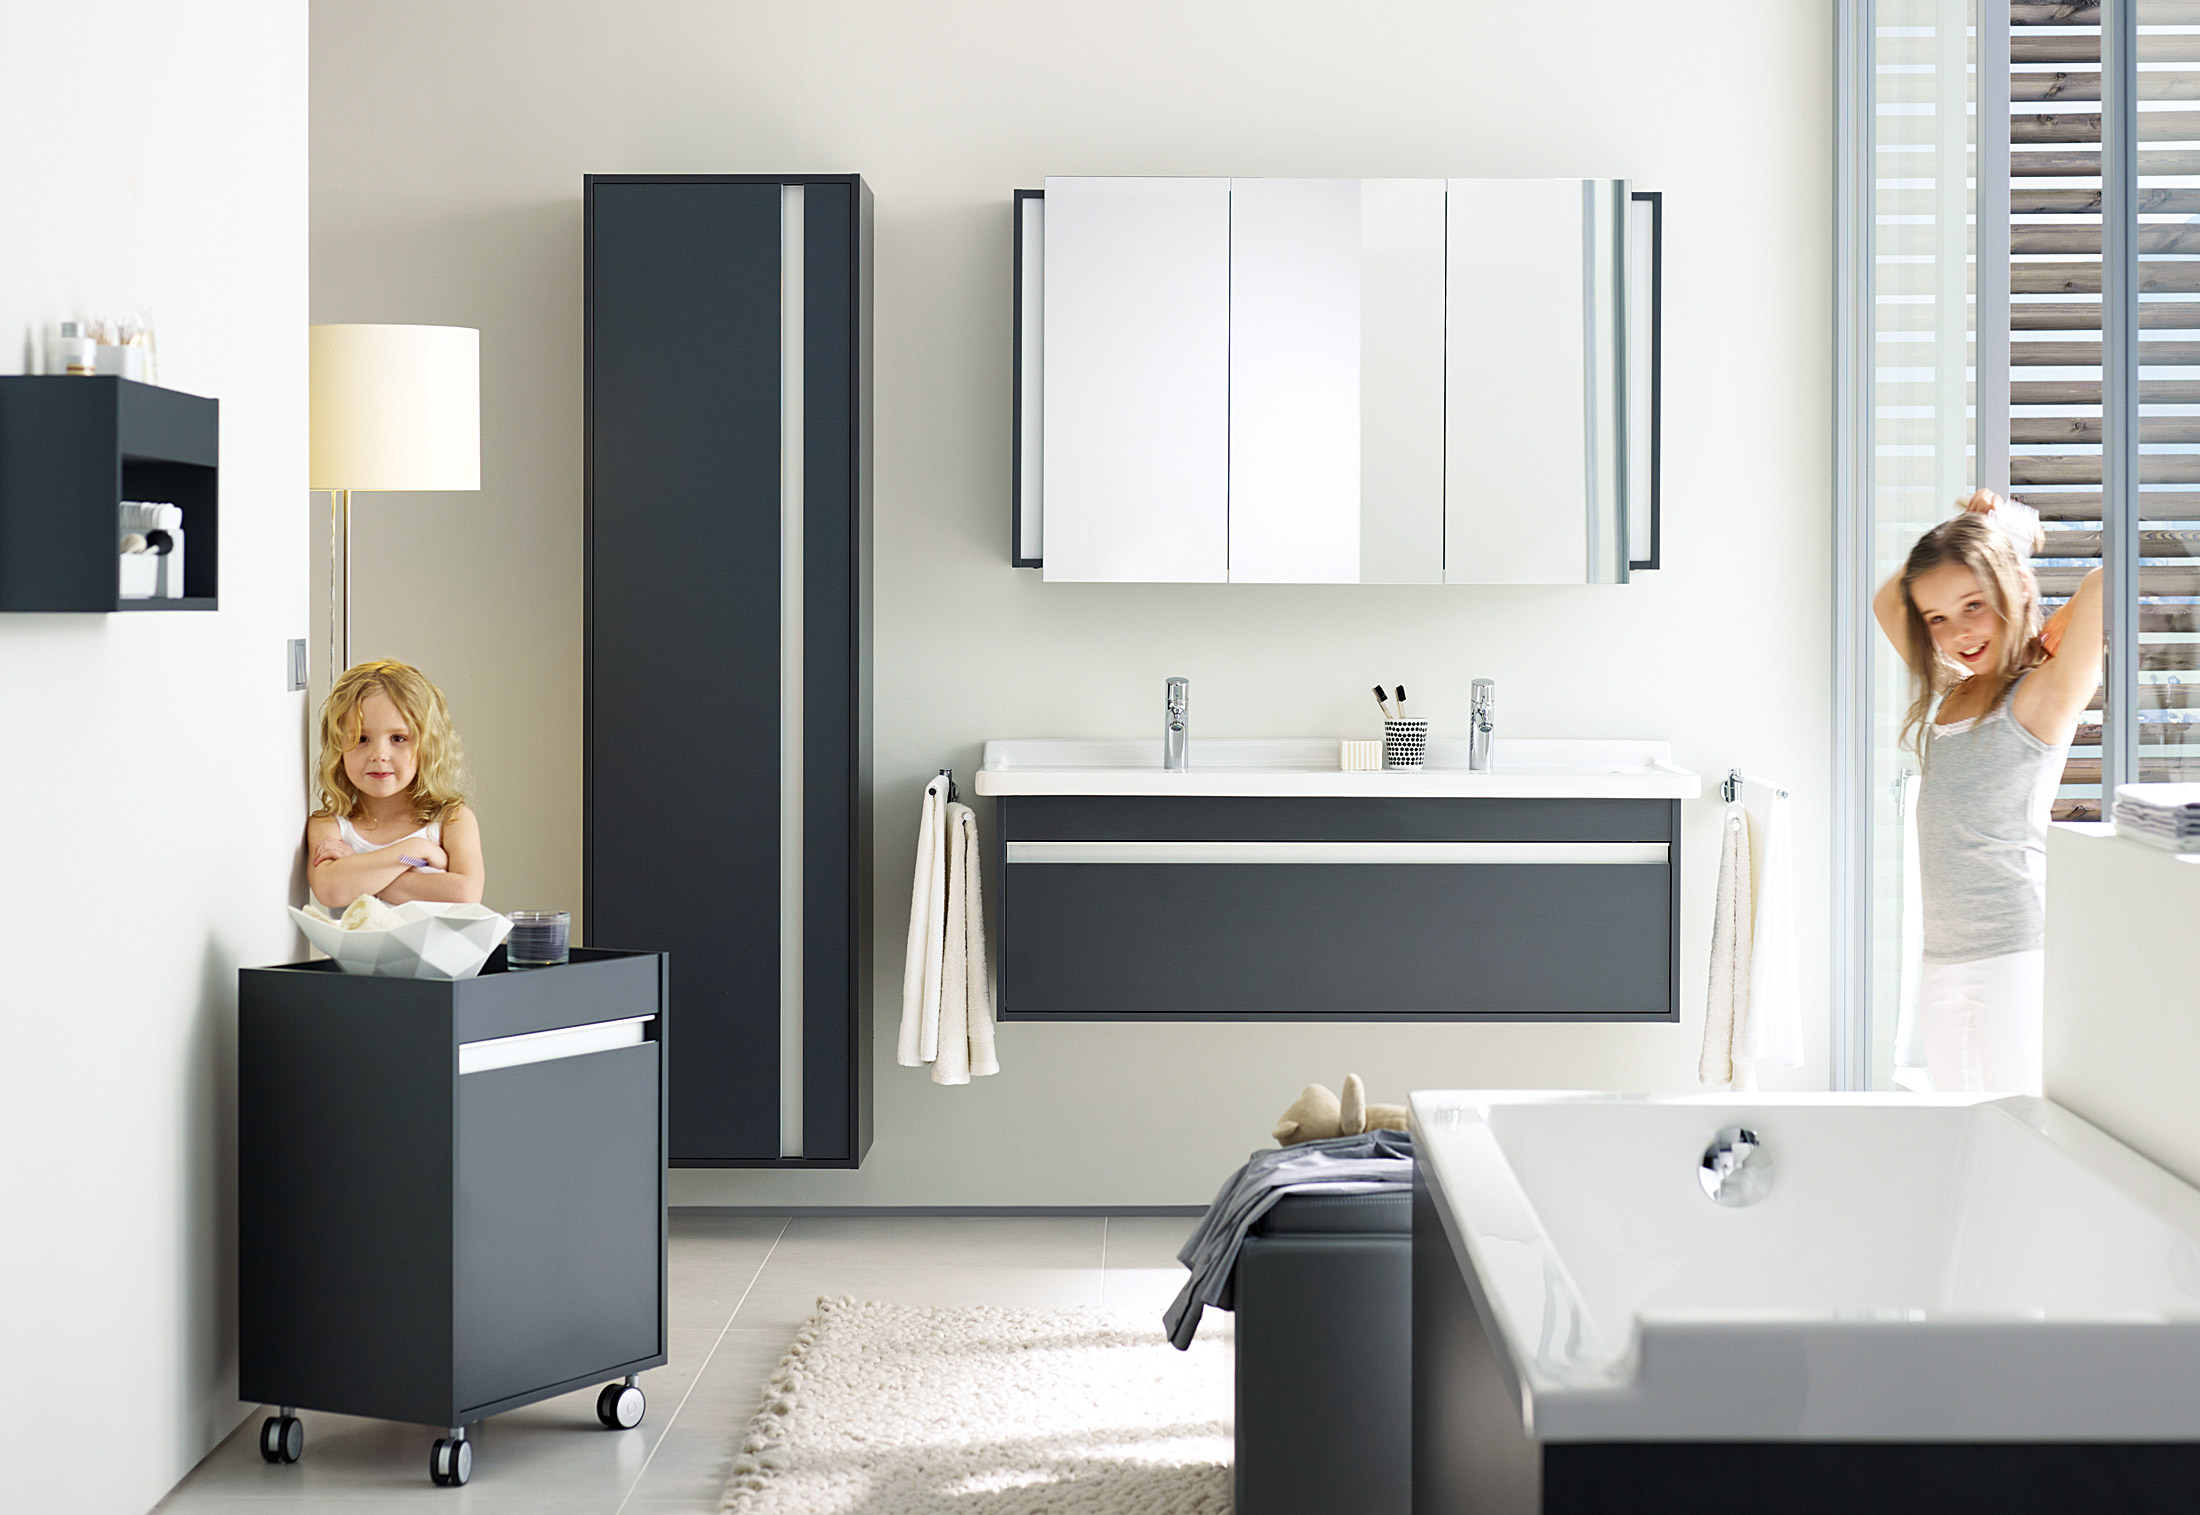 Ketho bath shelf by Duravit | STYLEPARK